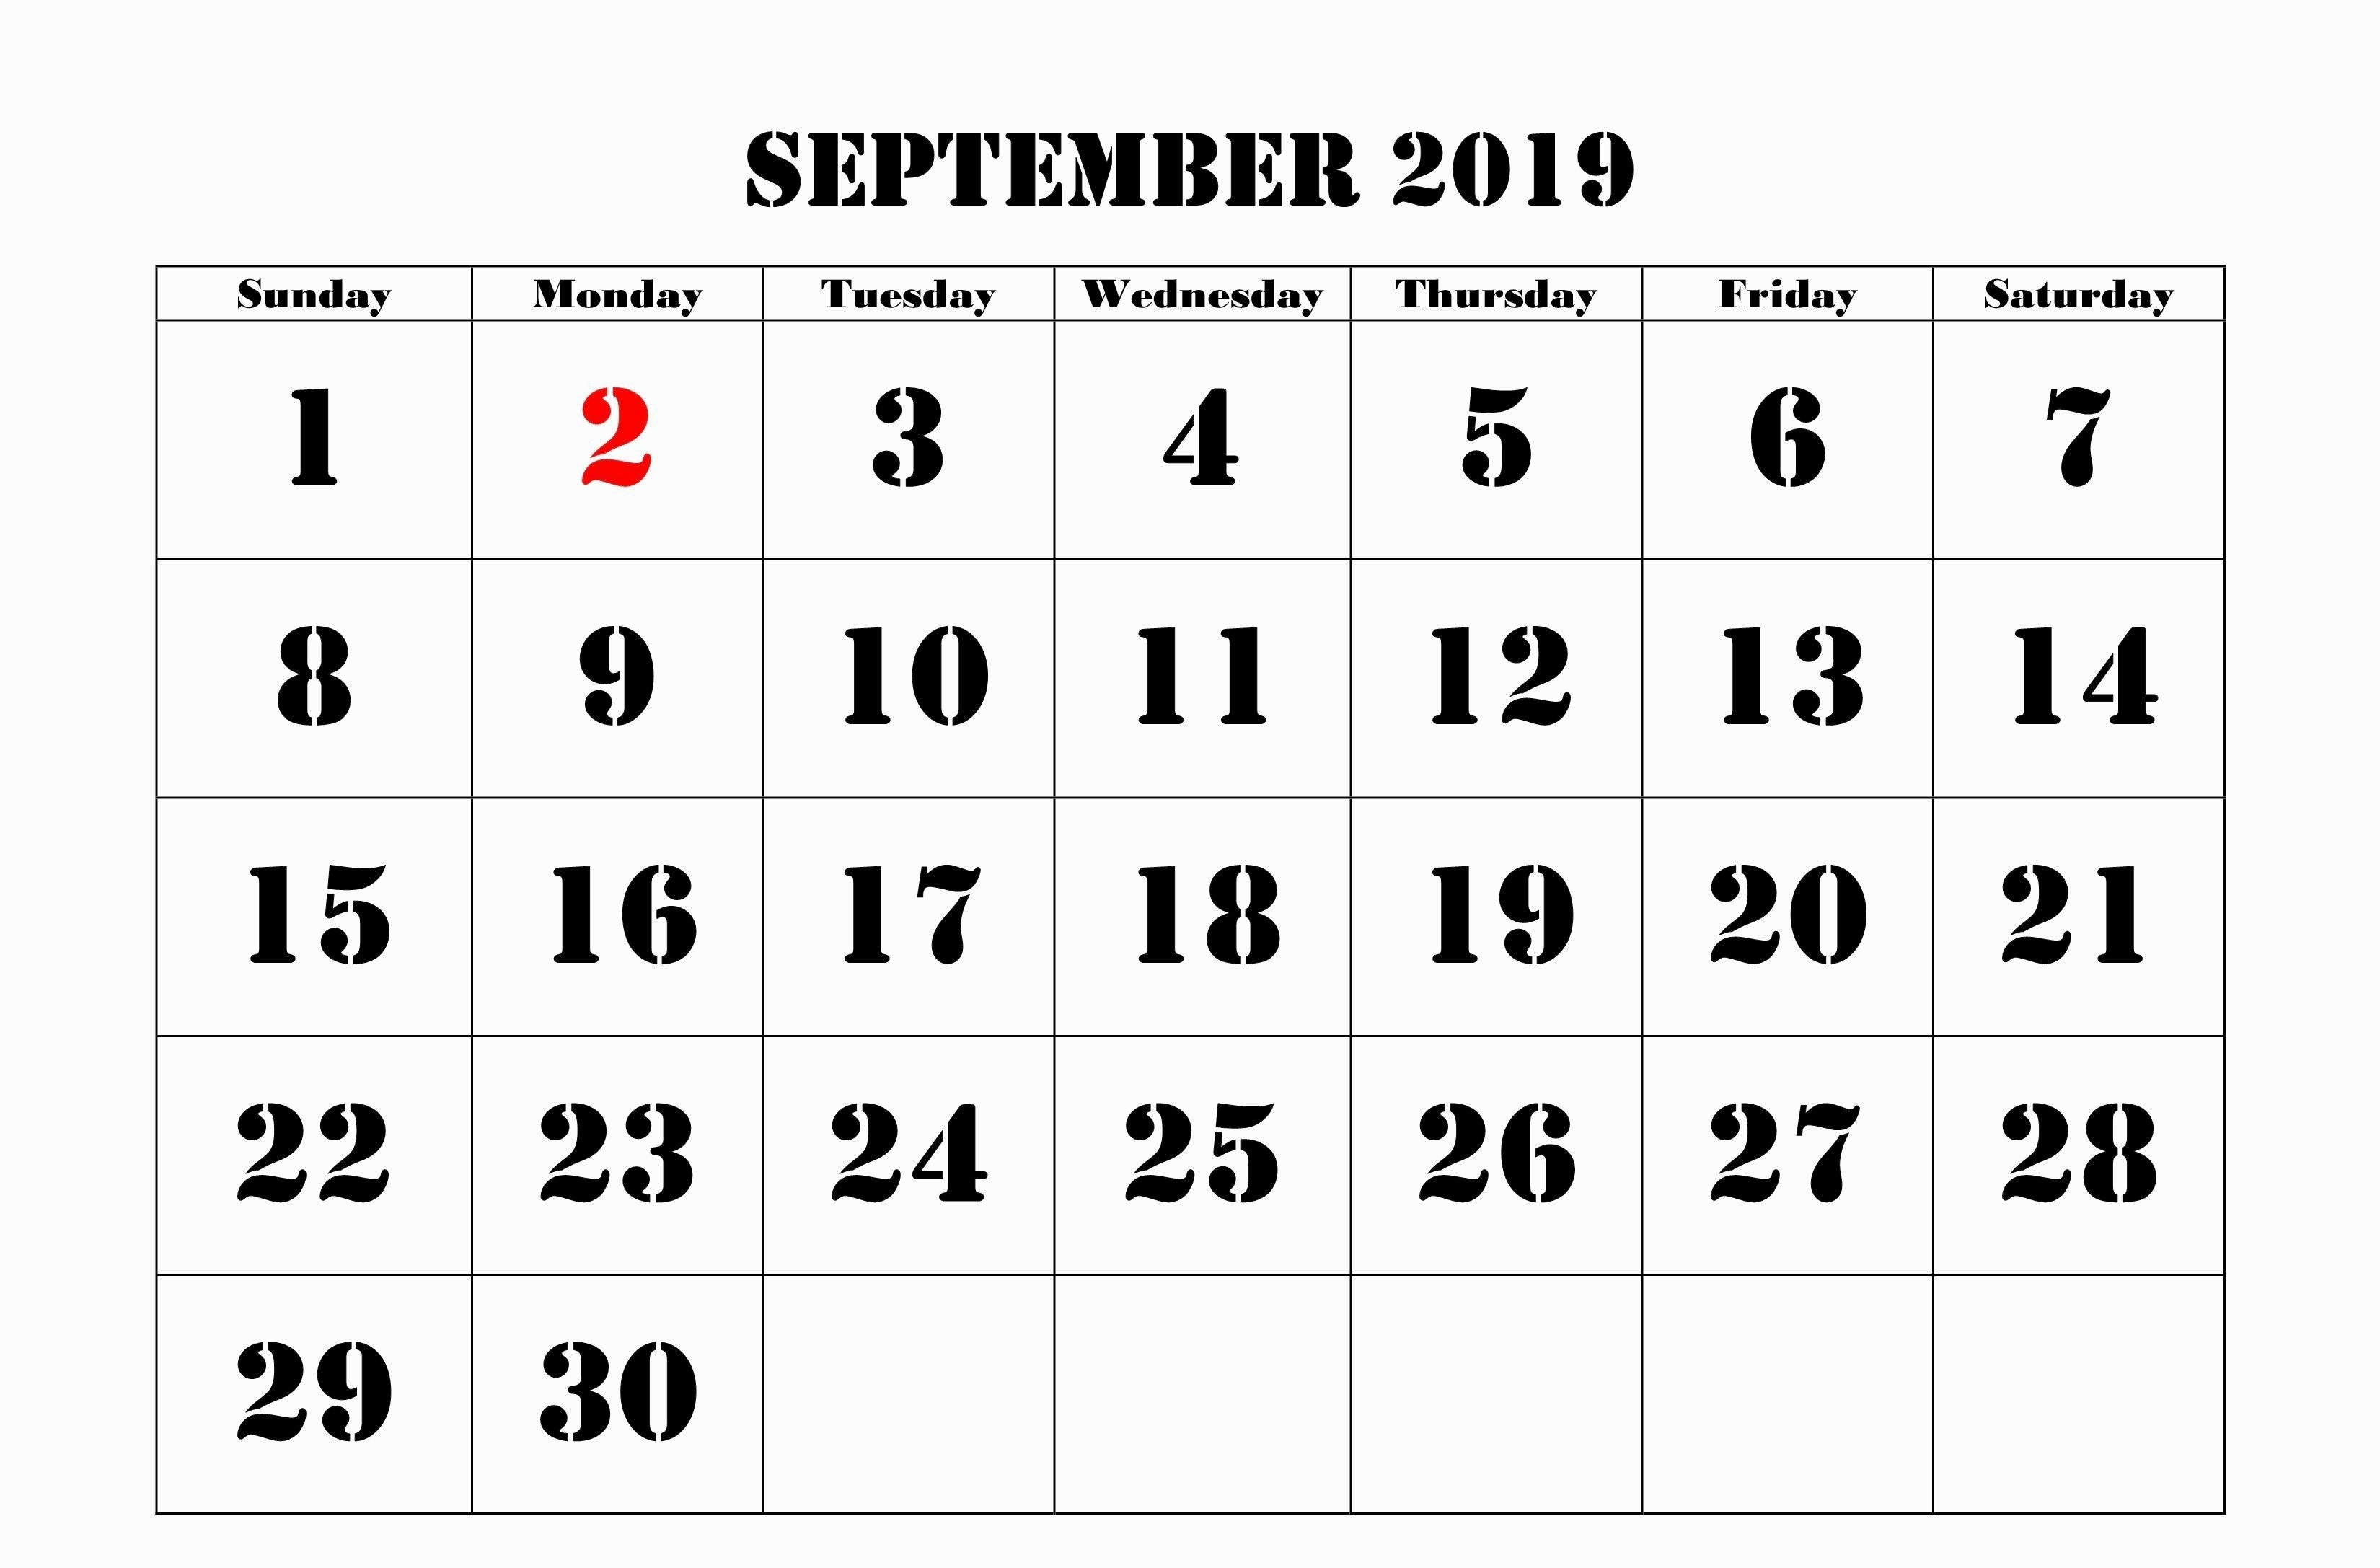 September 2019 Calendar Moon Phases